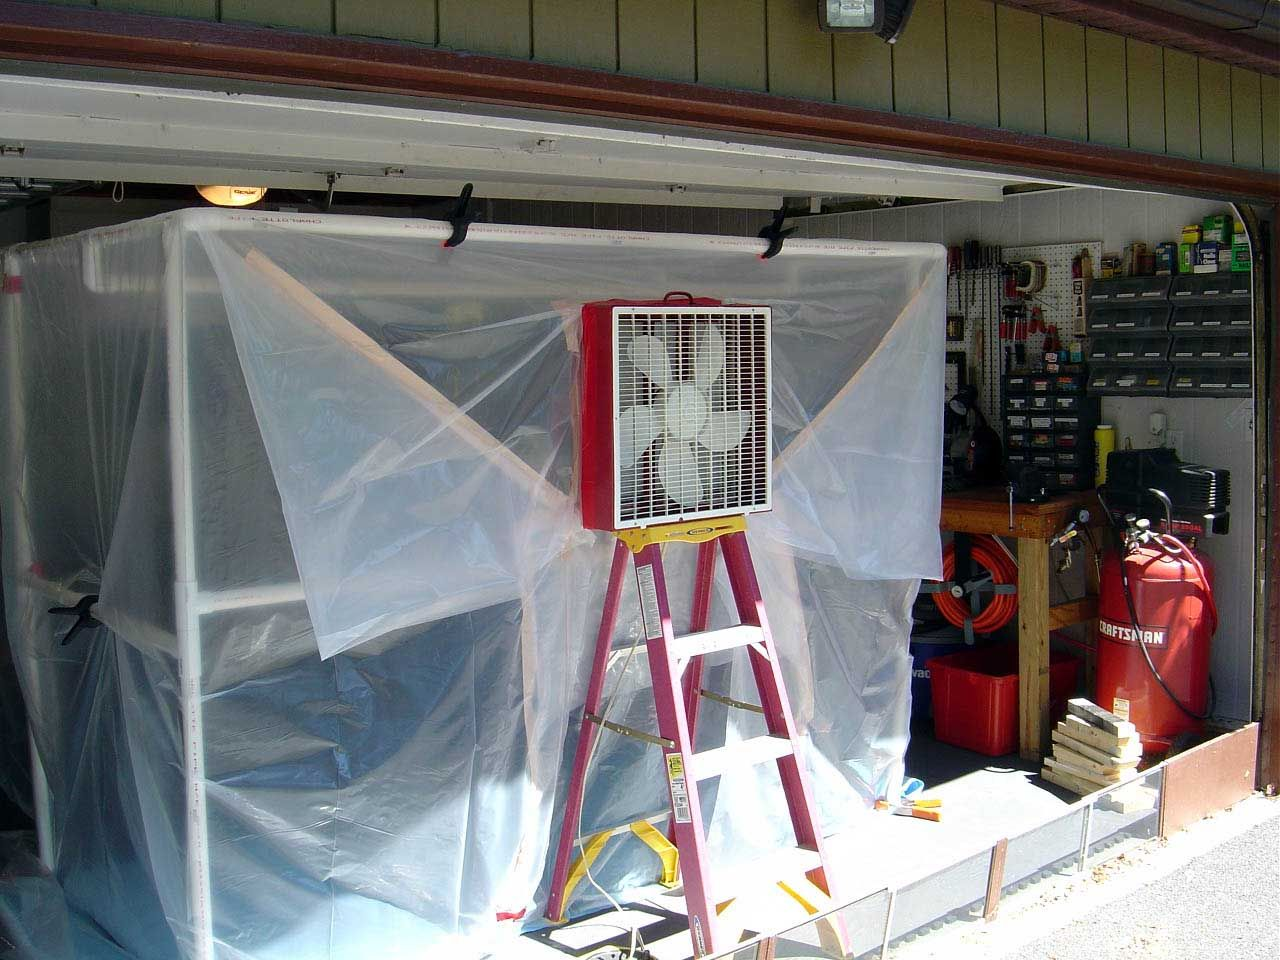 Pvc Spray Paint Booth Portable Paint Booth Diy Paint Booth Spray Paint Booth